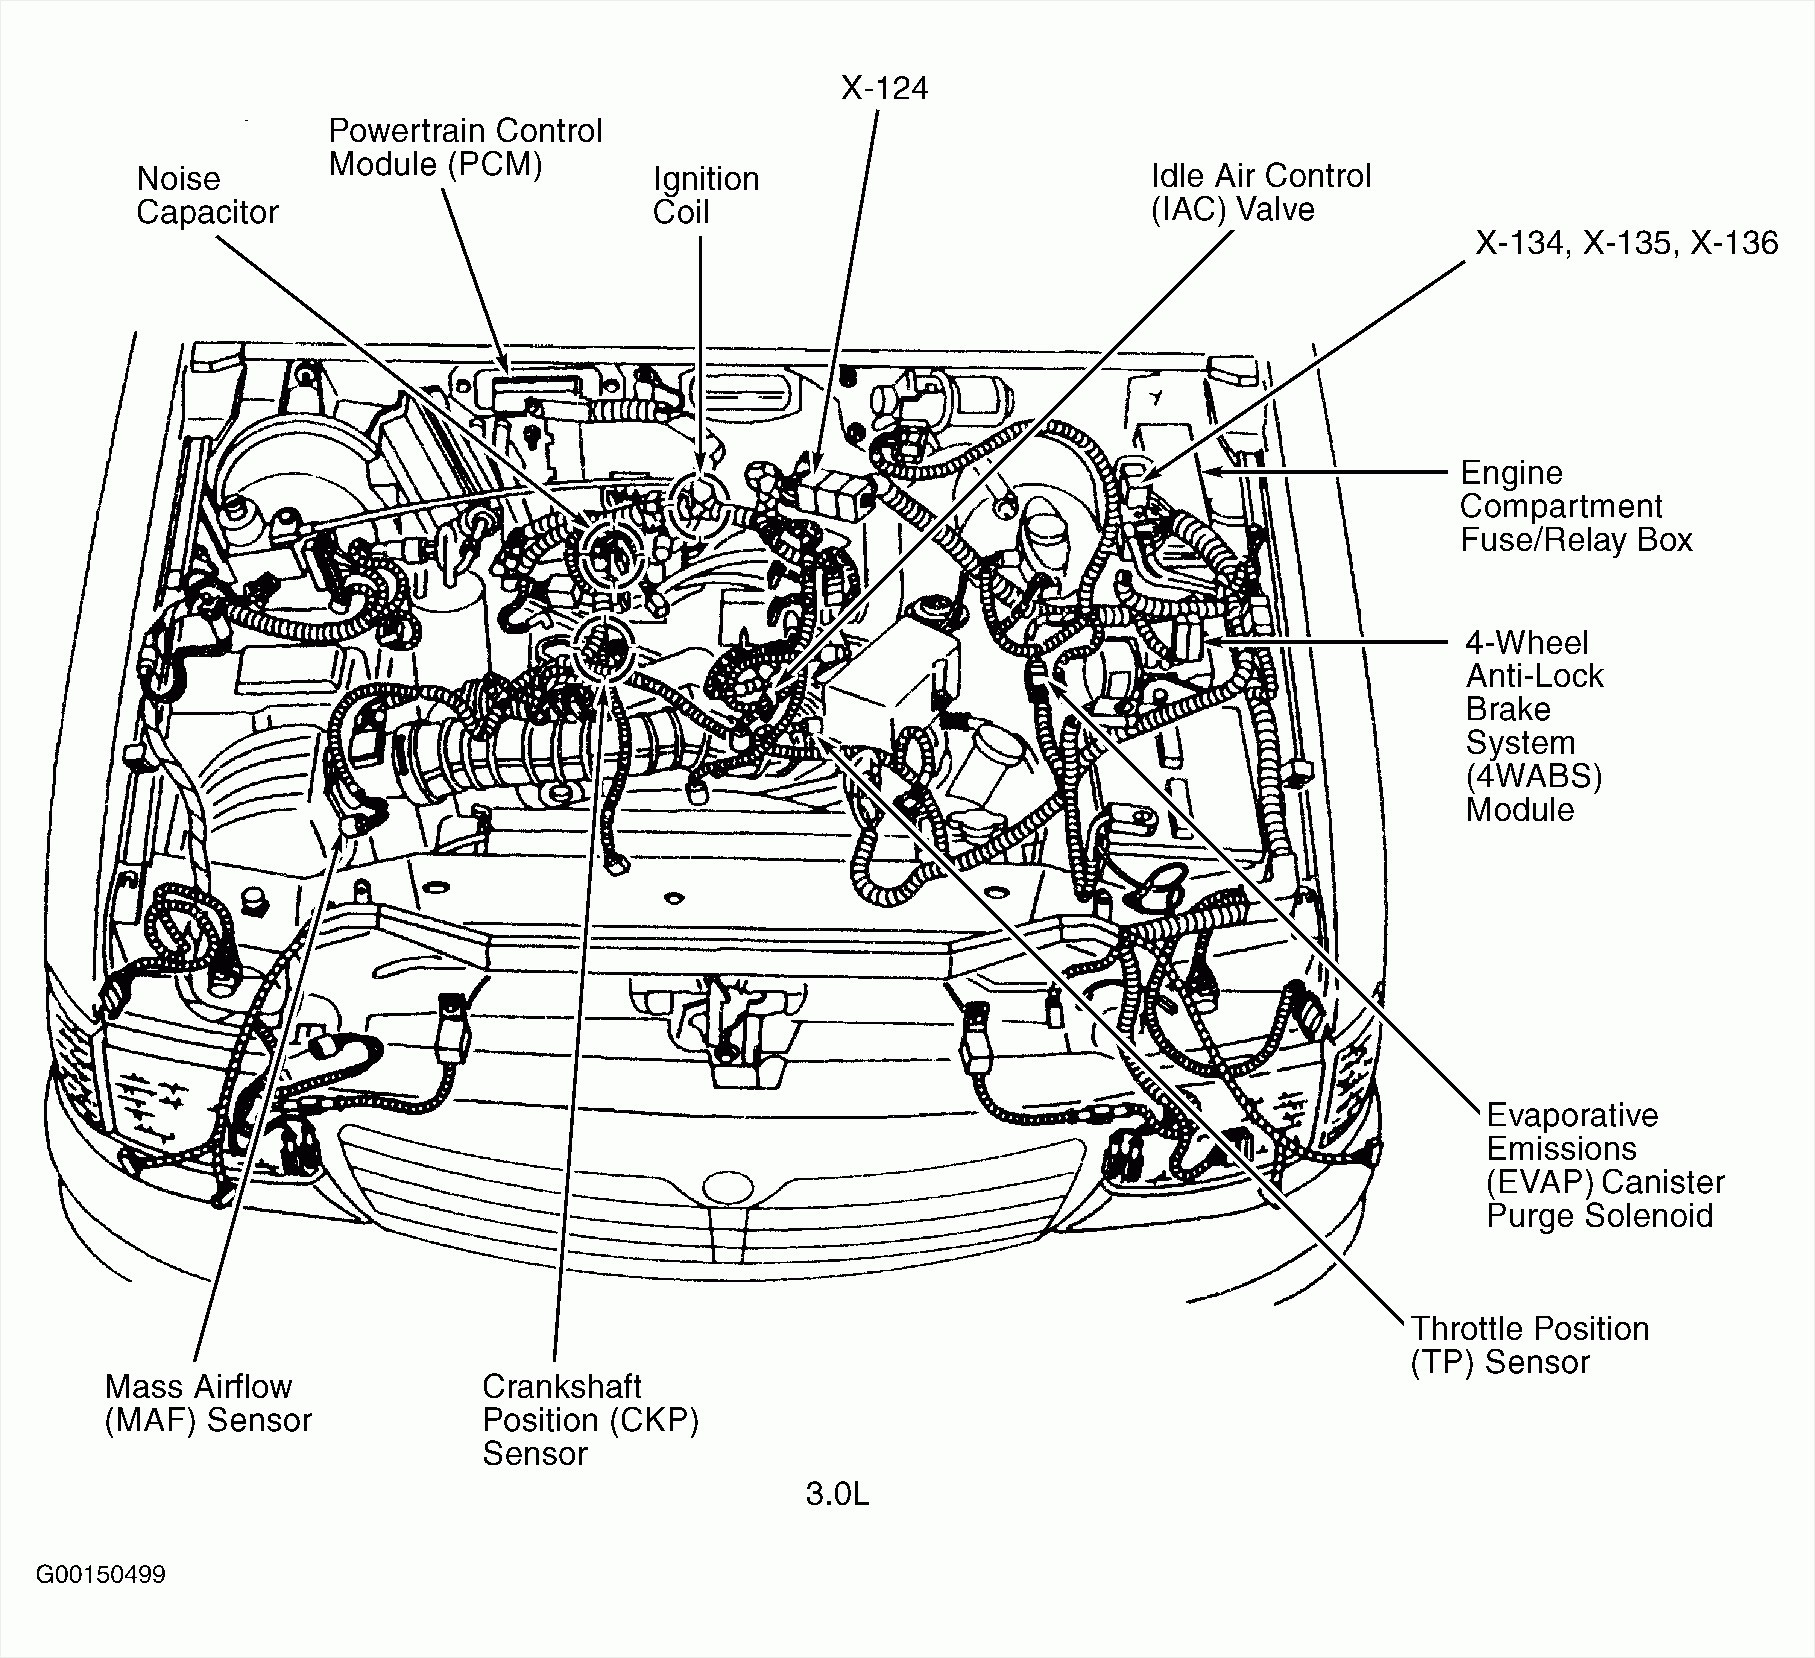 Mazda E1800 Wiring Diagram | schematic diagram download on mazda battery, mazda cooling system, mazda fuses, mazda brakes, mazda b2200 gauge cluster diagram, mazda exhaust, mazda miata radio wiring, mazda accessories, mazda alternator wiring, mazda 3 relay diagram, mazda engine, mazda manual transmission, mazda wiring color codes, mazda parts,